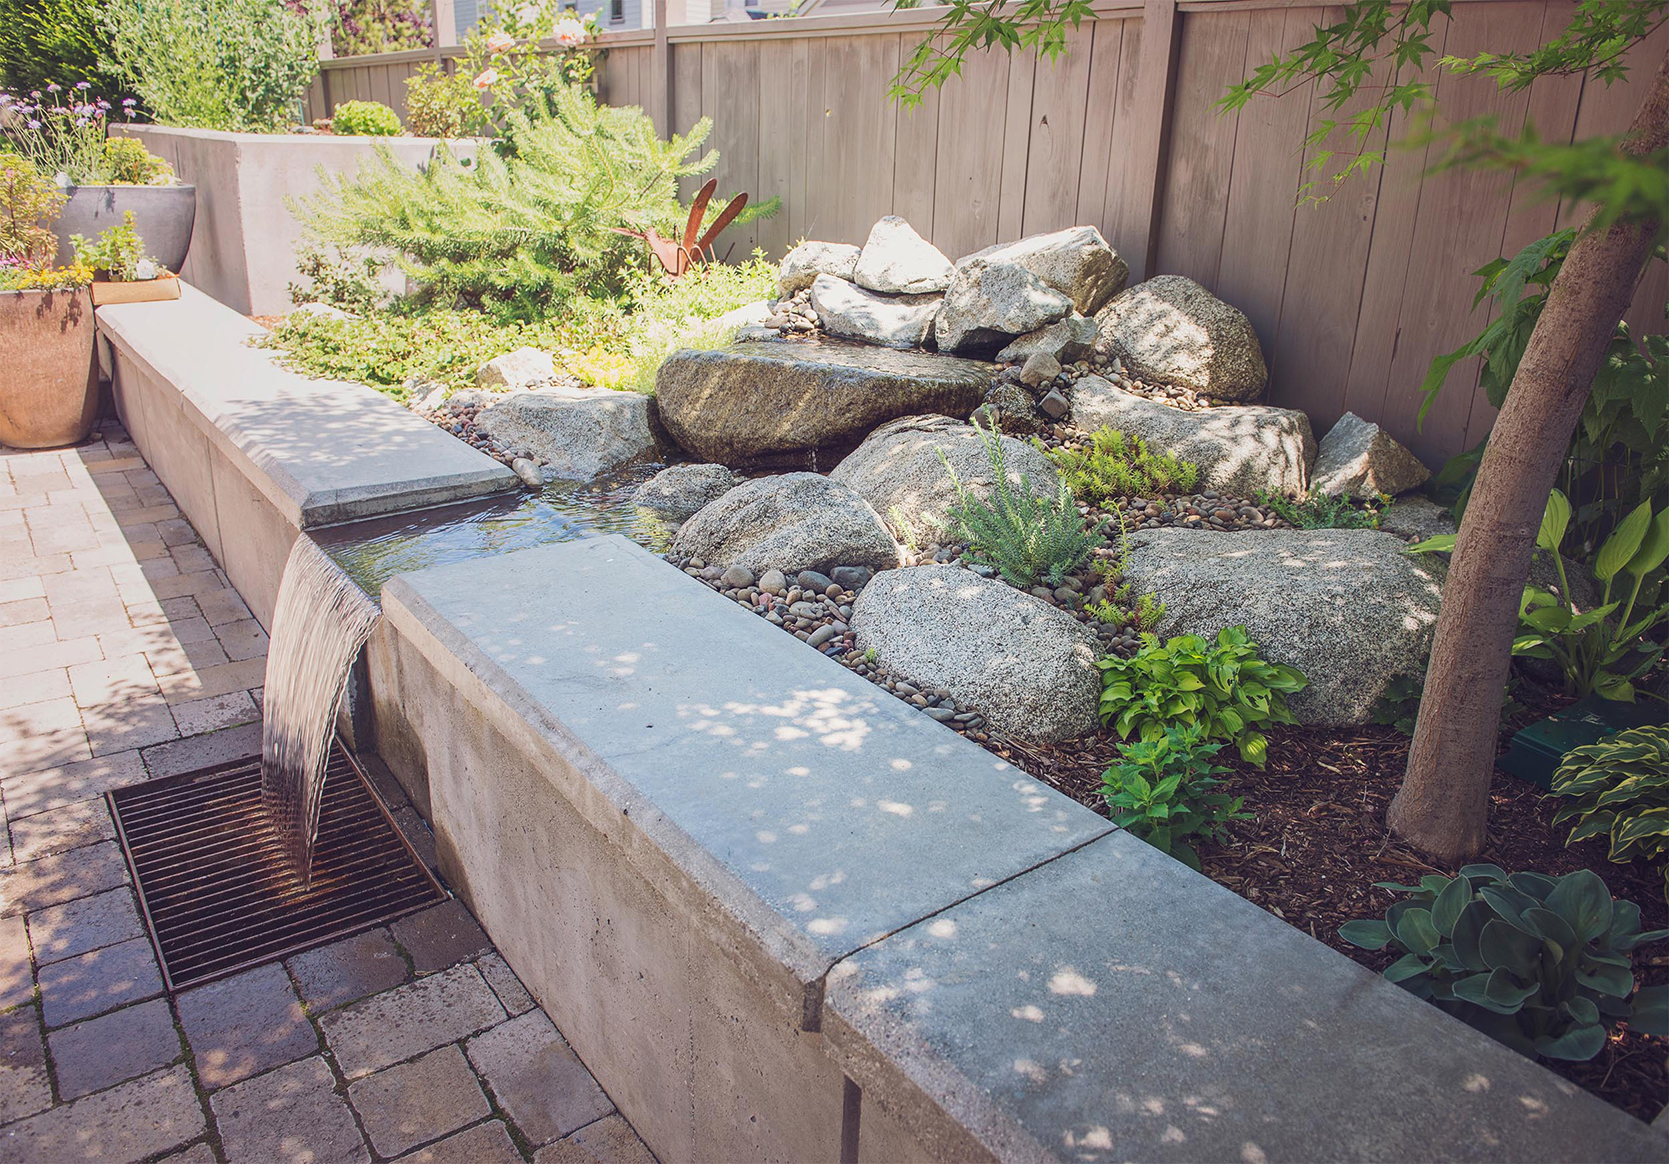 concrete bench seating + steel grate + granite boulder water feature built in + backyard relaxation